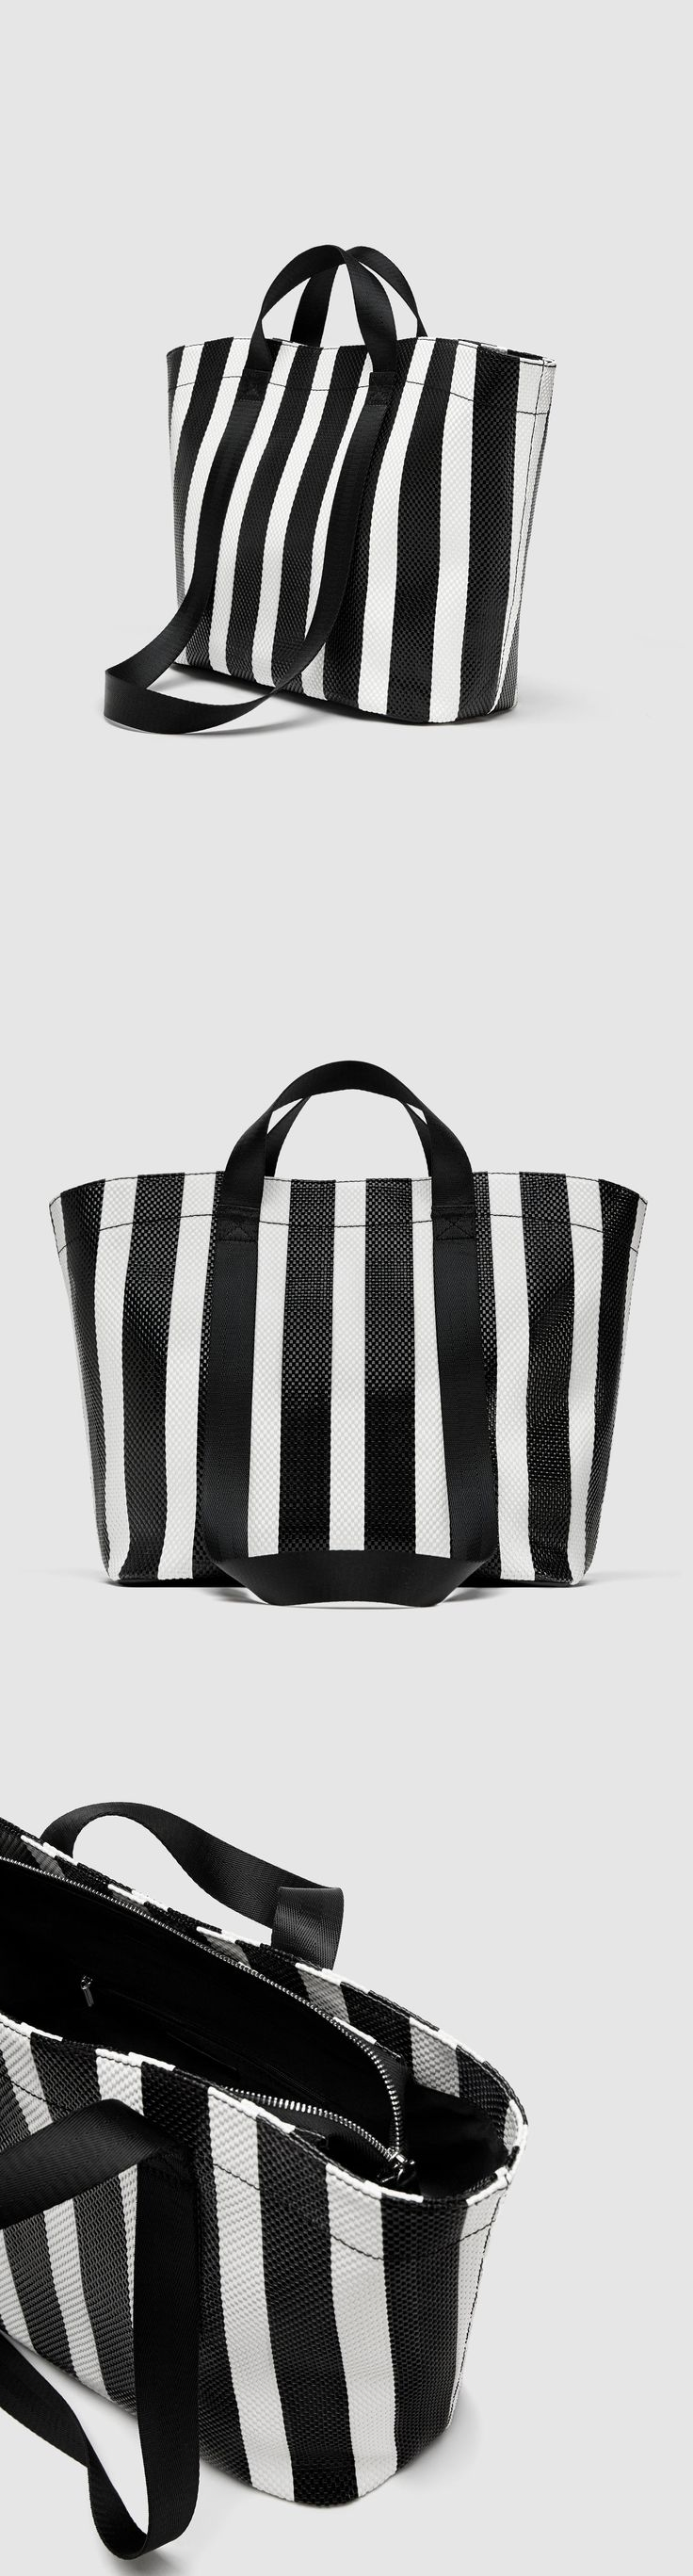 Striped Tote // 49.90 USD // Zara // Tote bag in contrasting colours. Two-tone striped detail on the sides. Double handle and shoulder strap. Zip closure. Height x Width x Depth: 32 x 48 x 16 cm. / 12.5 x 18.8 x 6.2″